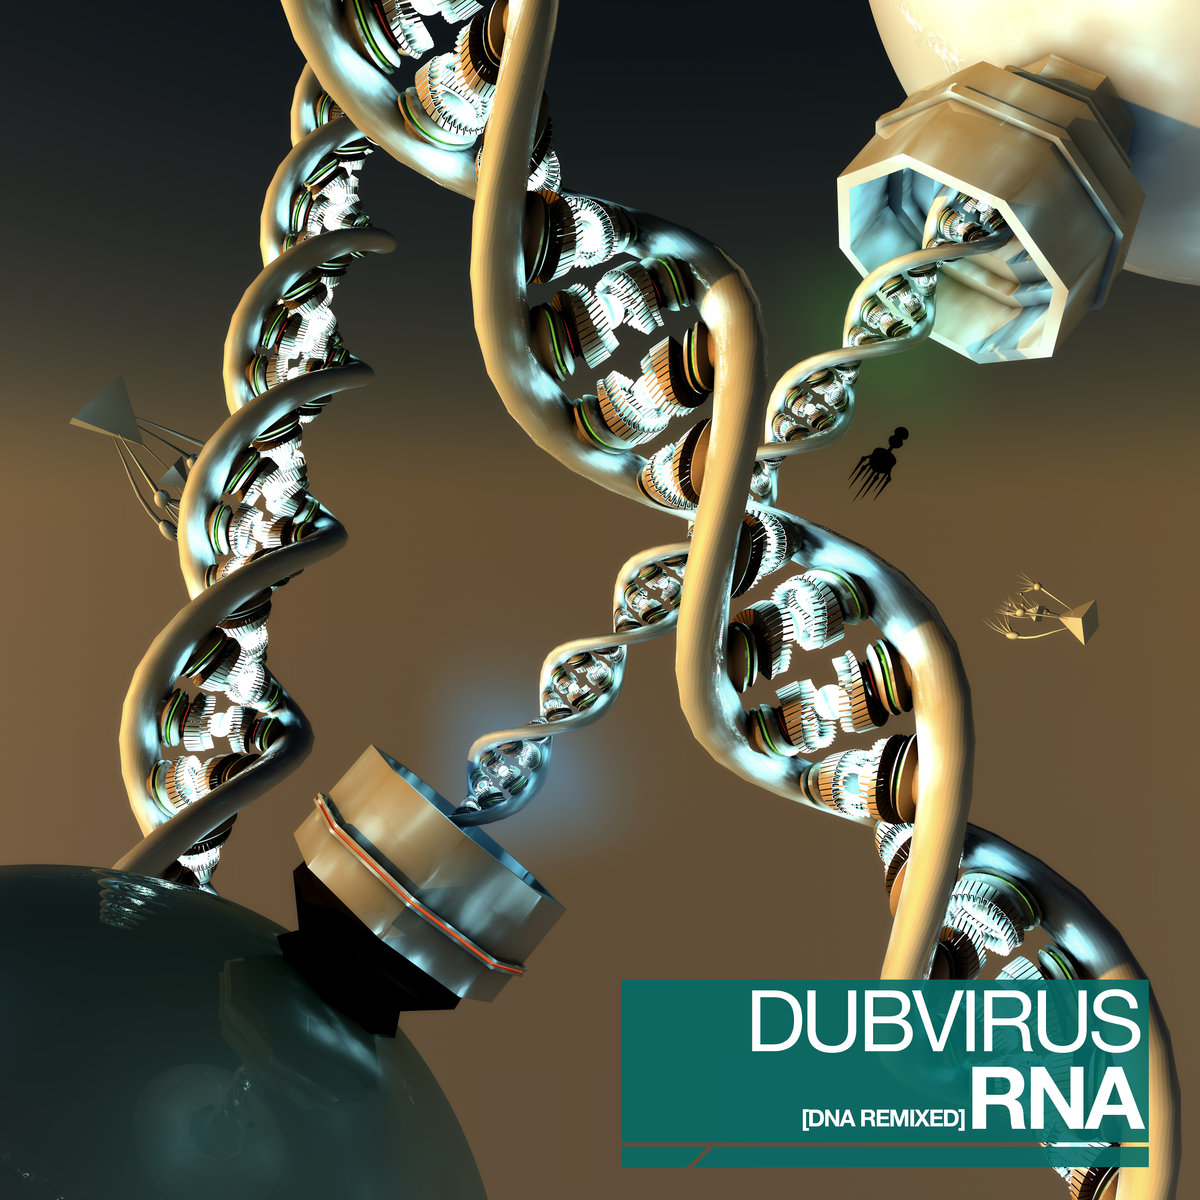 Dubvirus - Source (Future Simple Project Remix) @ 'RNA (DNA Remixed)' album (bass, dubvirus)